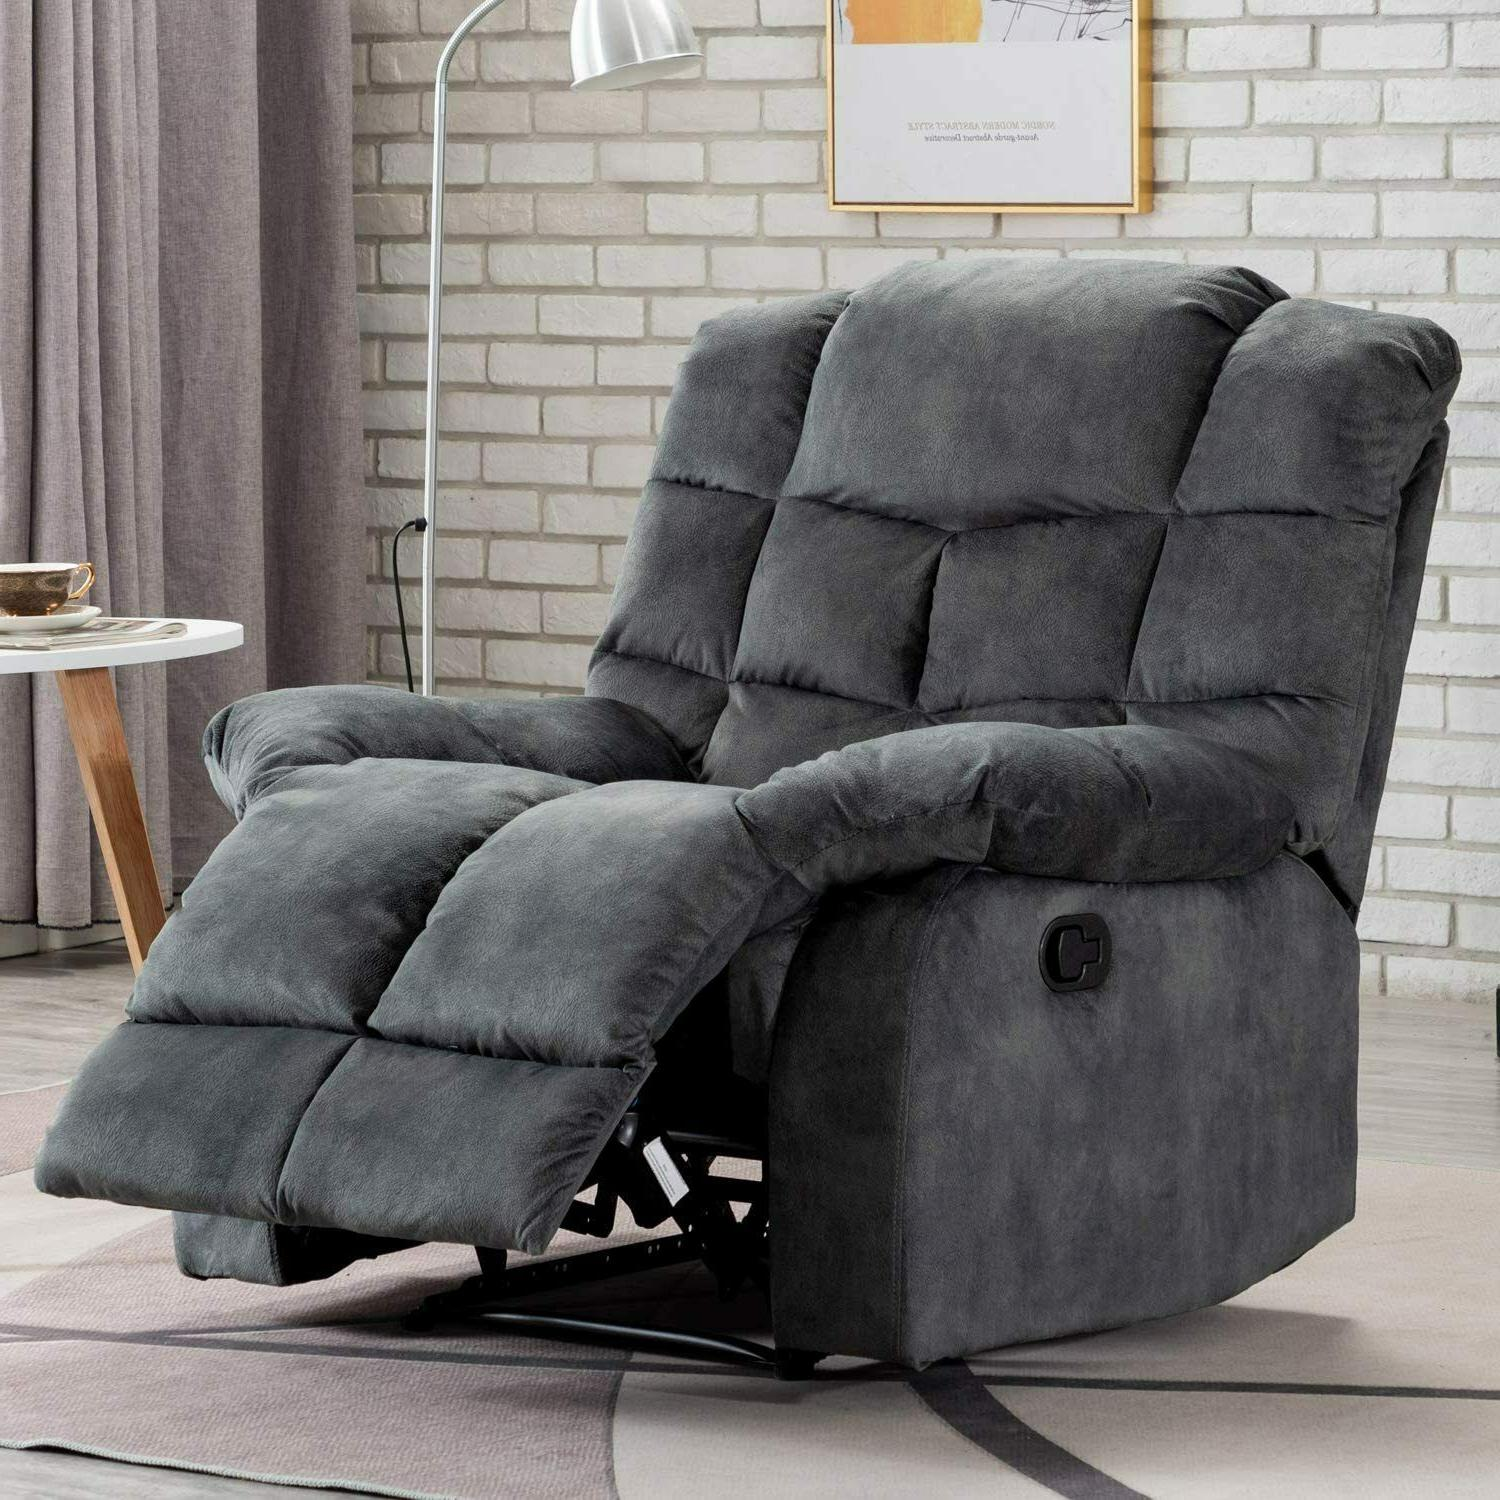 Overstuffed Manual Single Couch Sofa Thickened Back